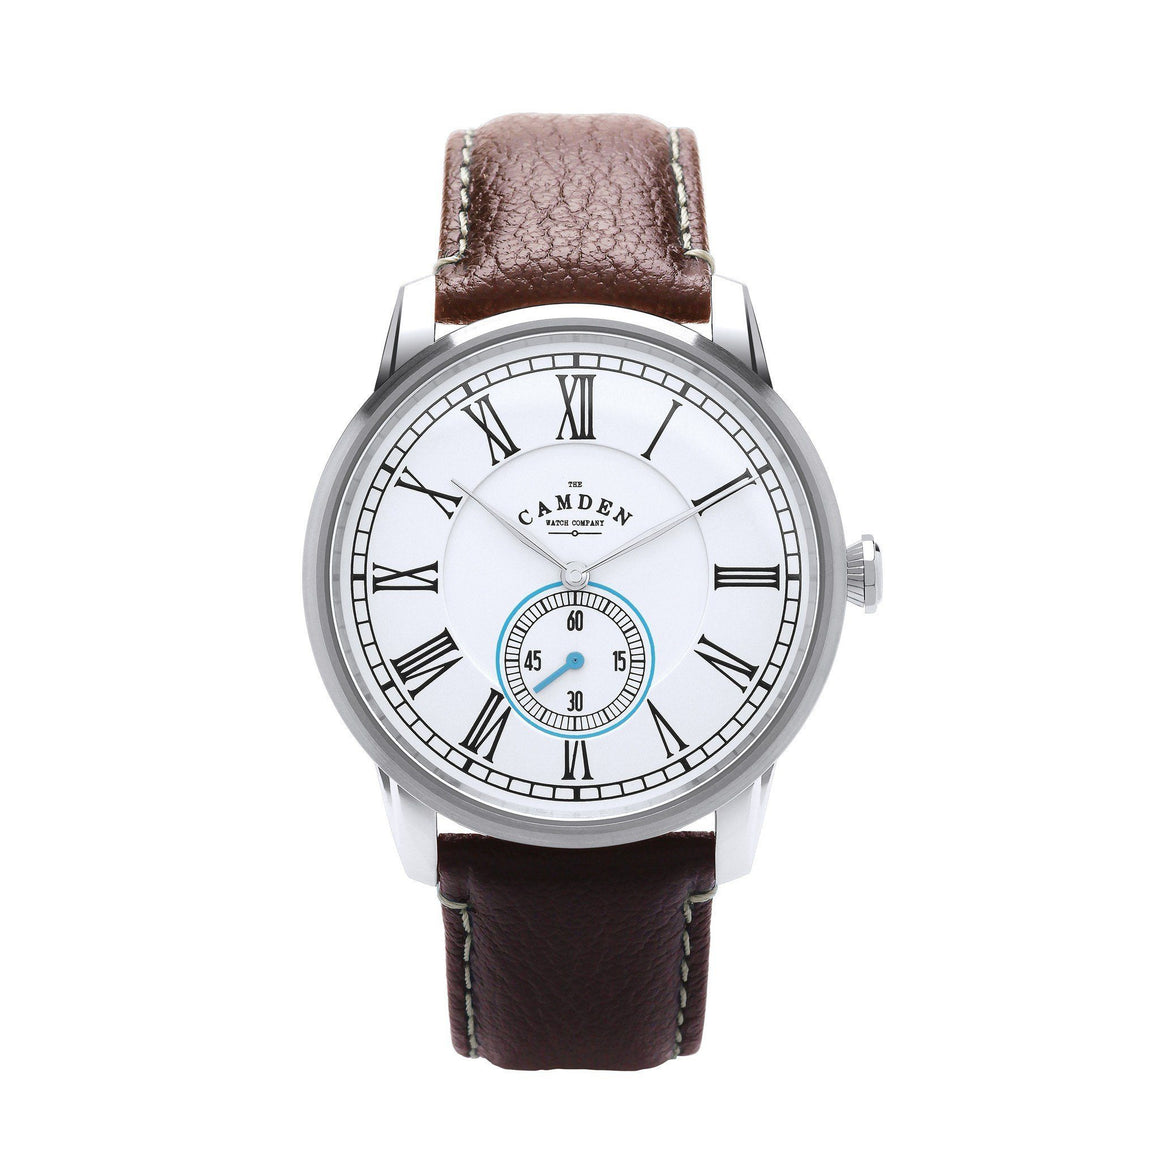 No.29 Gents Camden Watch -Steel, Brown And Blue